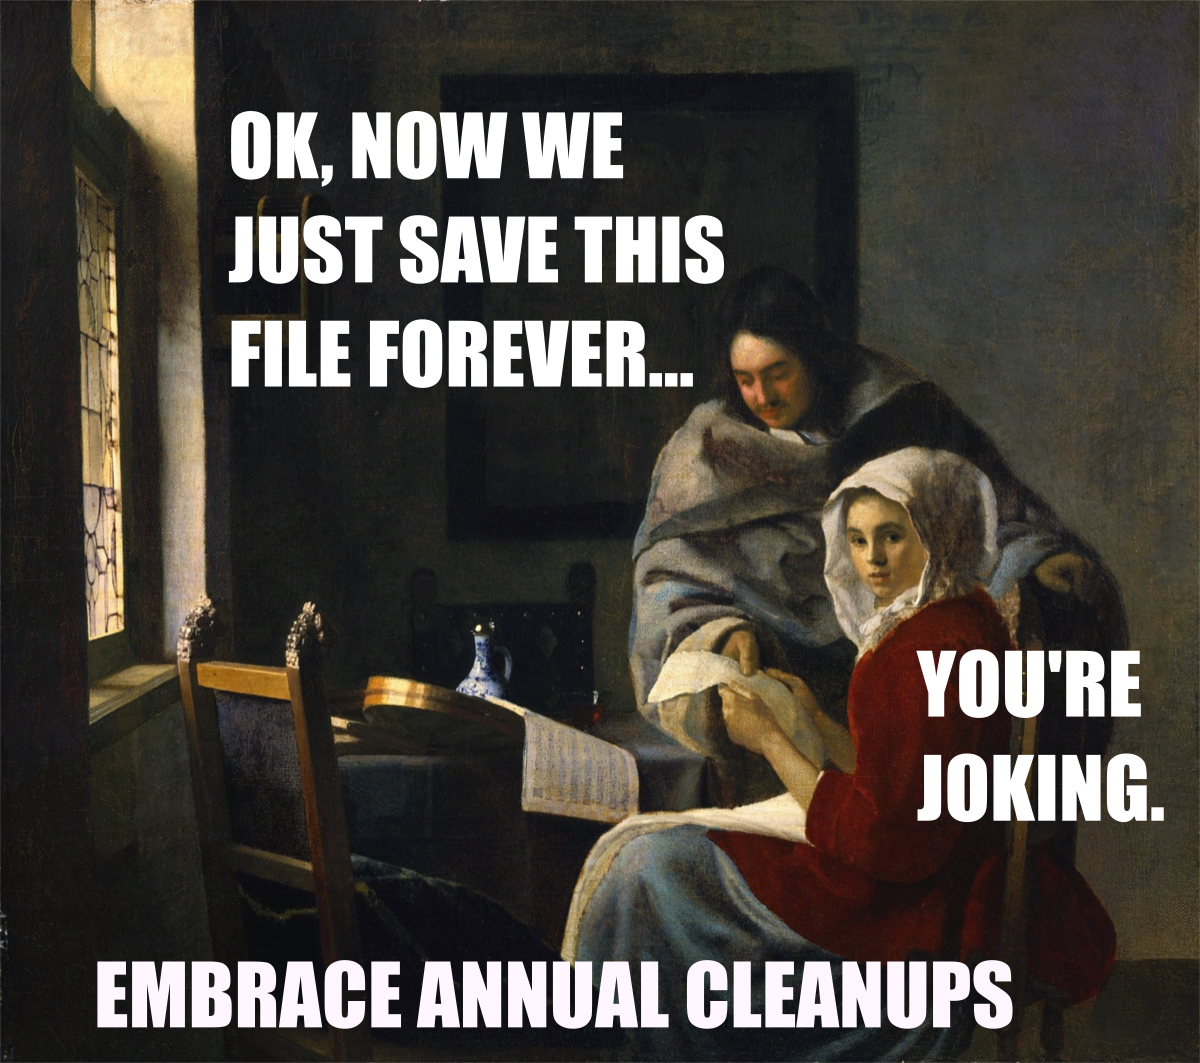 OK, now we just save this file forever... You're joking. Embrace annual cleanups.